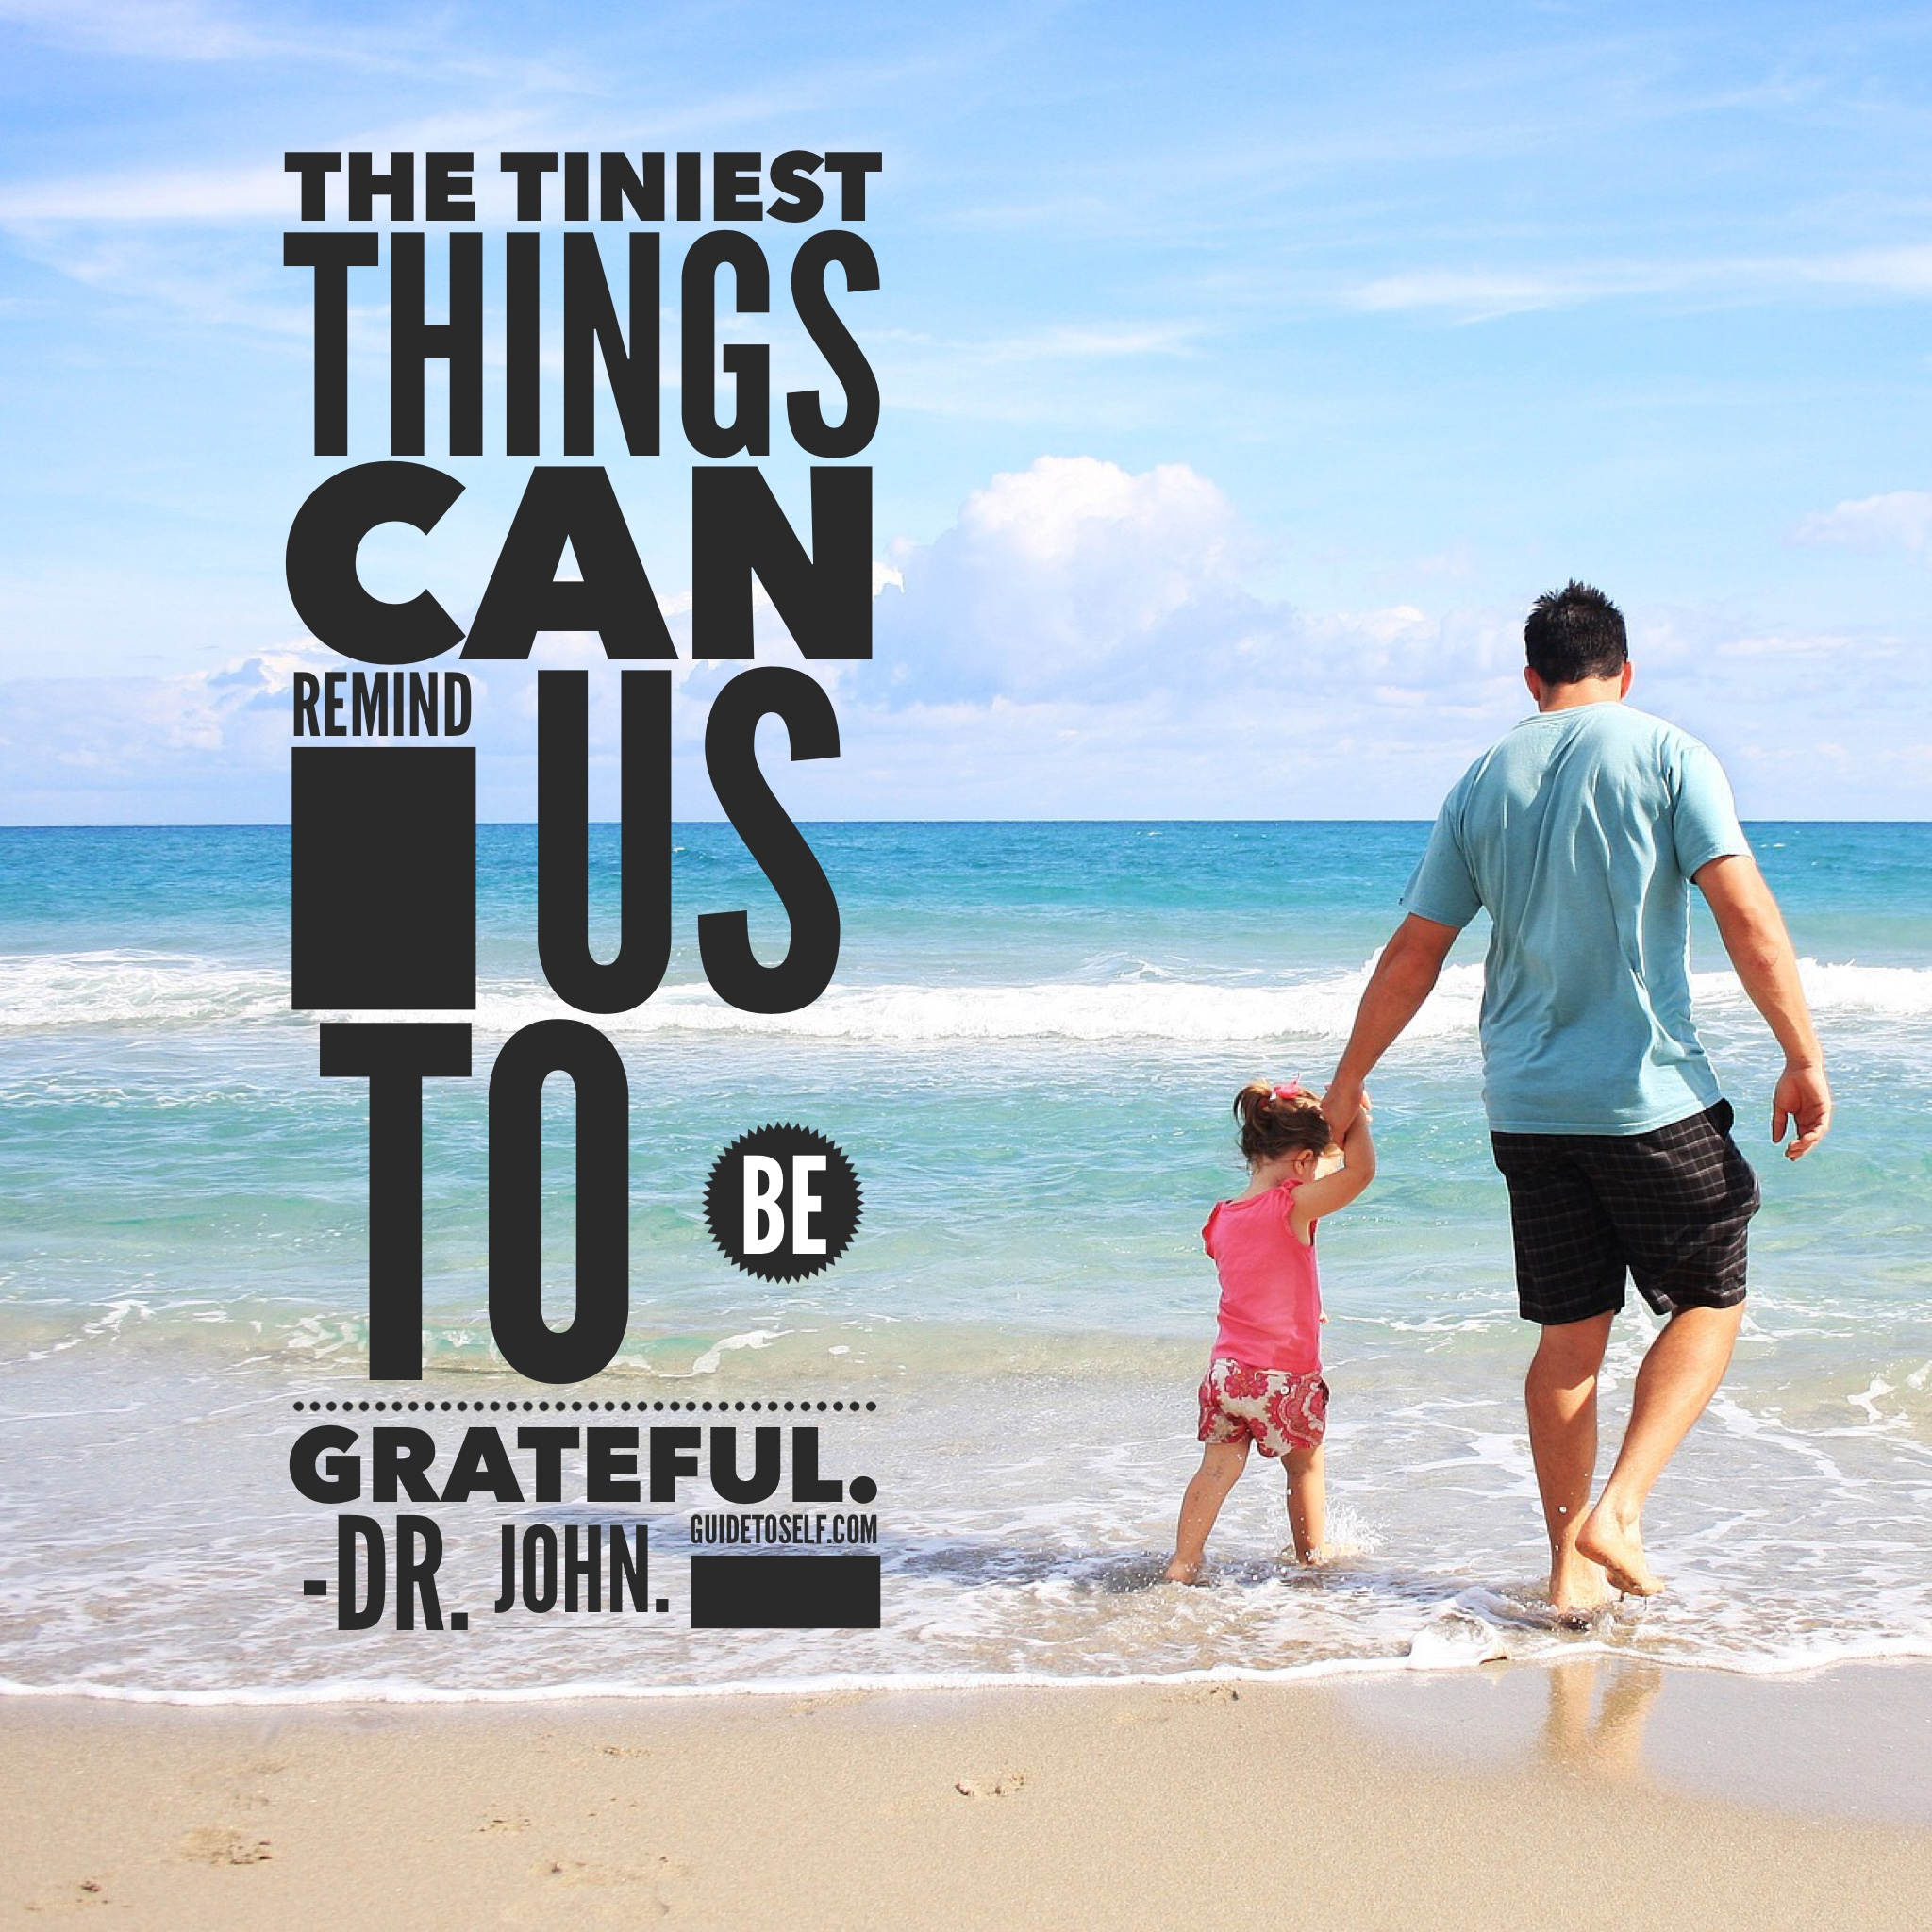 Top 10 Reasons to be Grateful